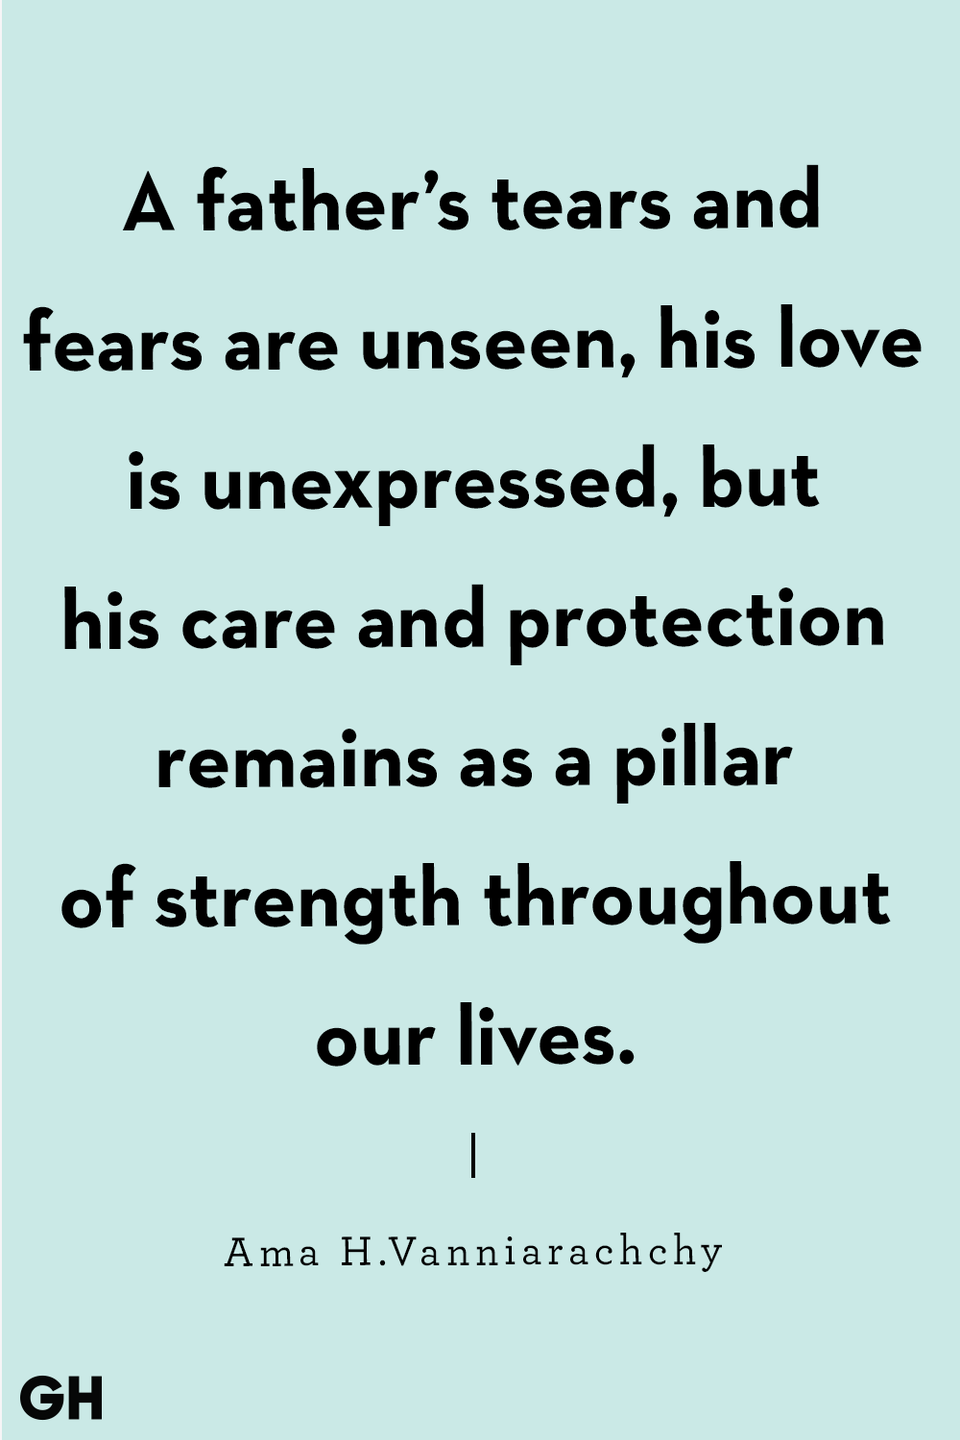 """<p>"""" A father's tears and fears are unseen, his love is unexpressed, but his care and protection remains as a pillar of strength throughout our lives.""""</p>"""